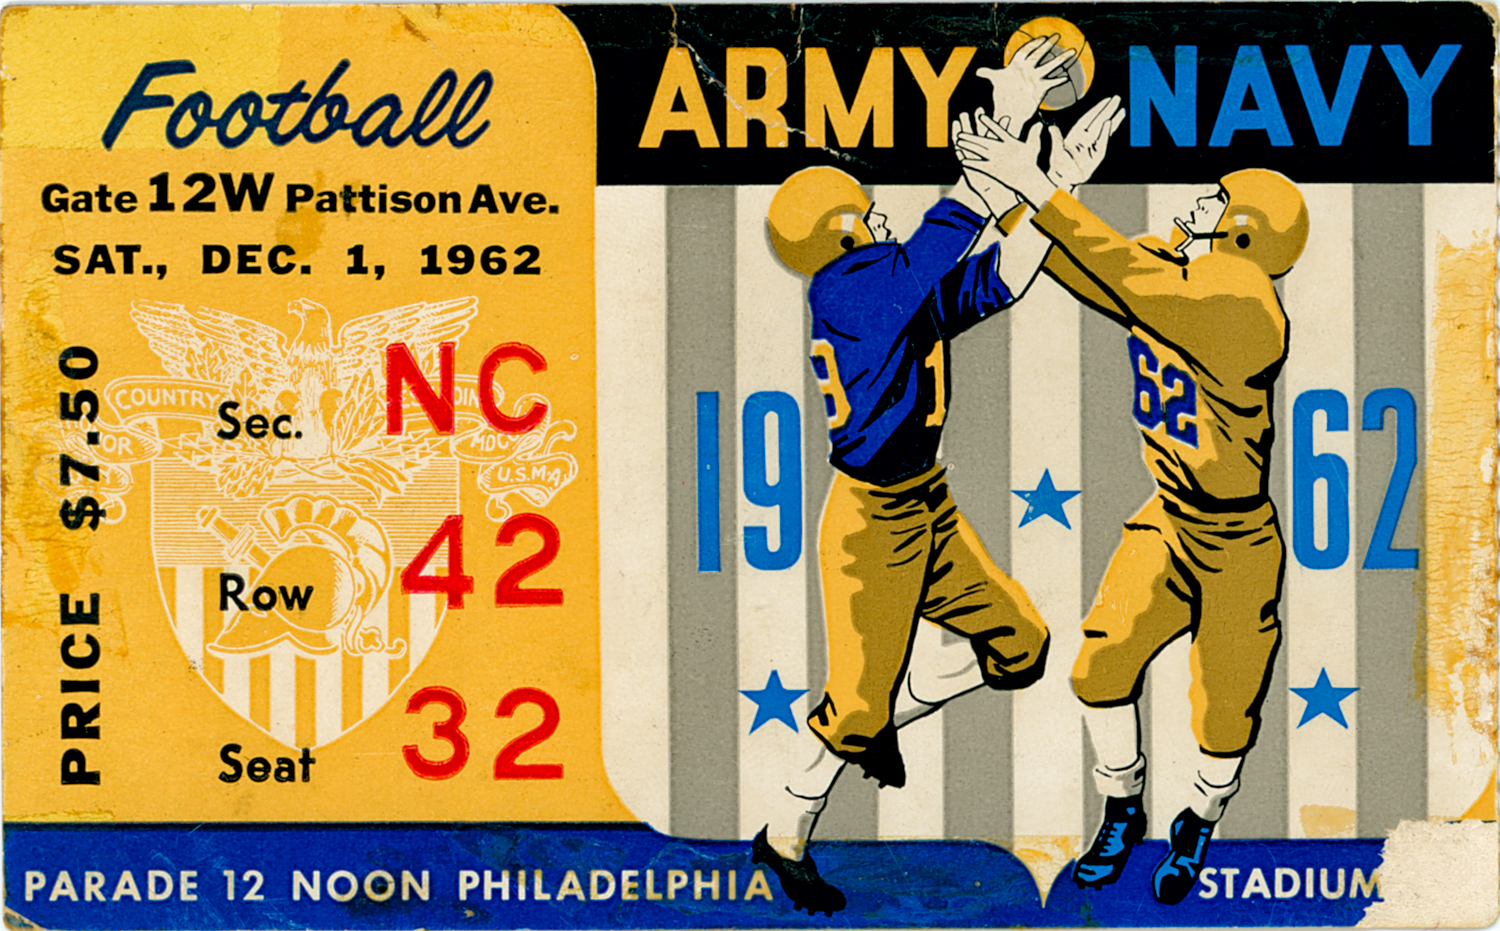 Ticket to the 1962 Army Navy Game